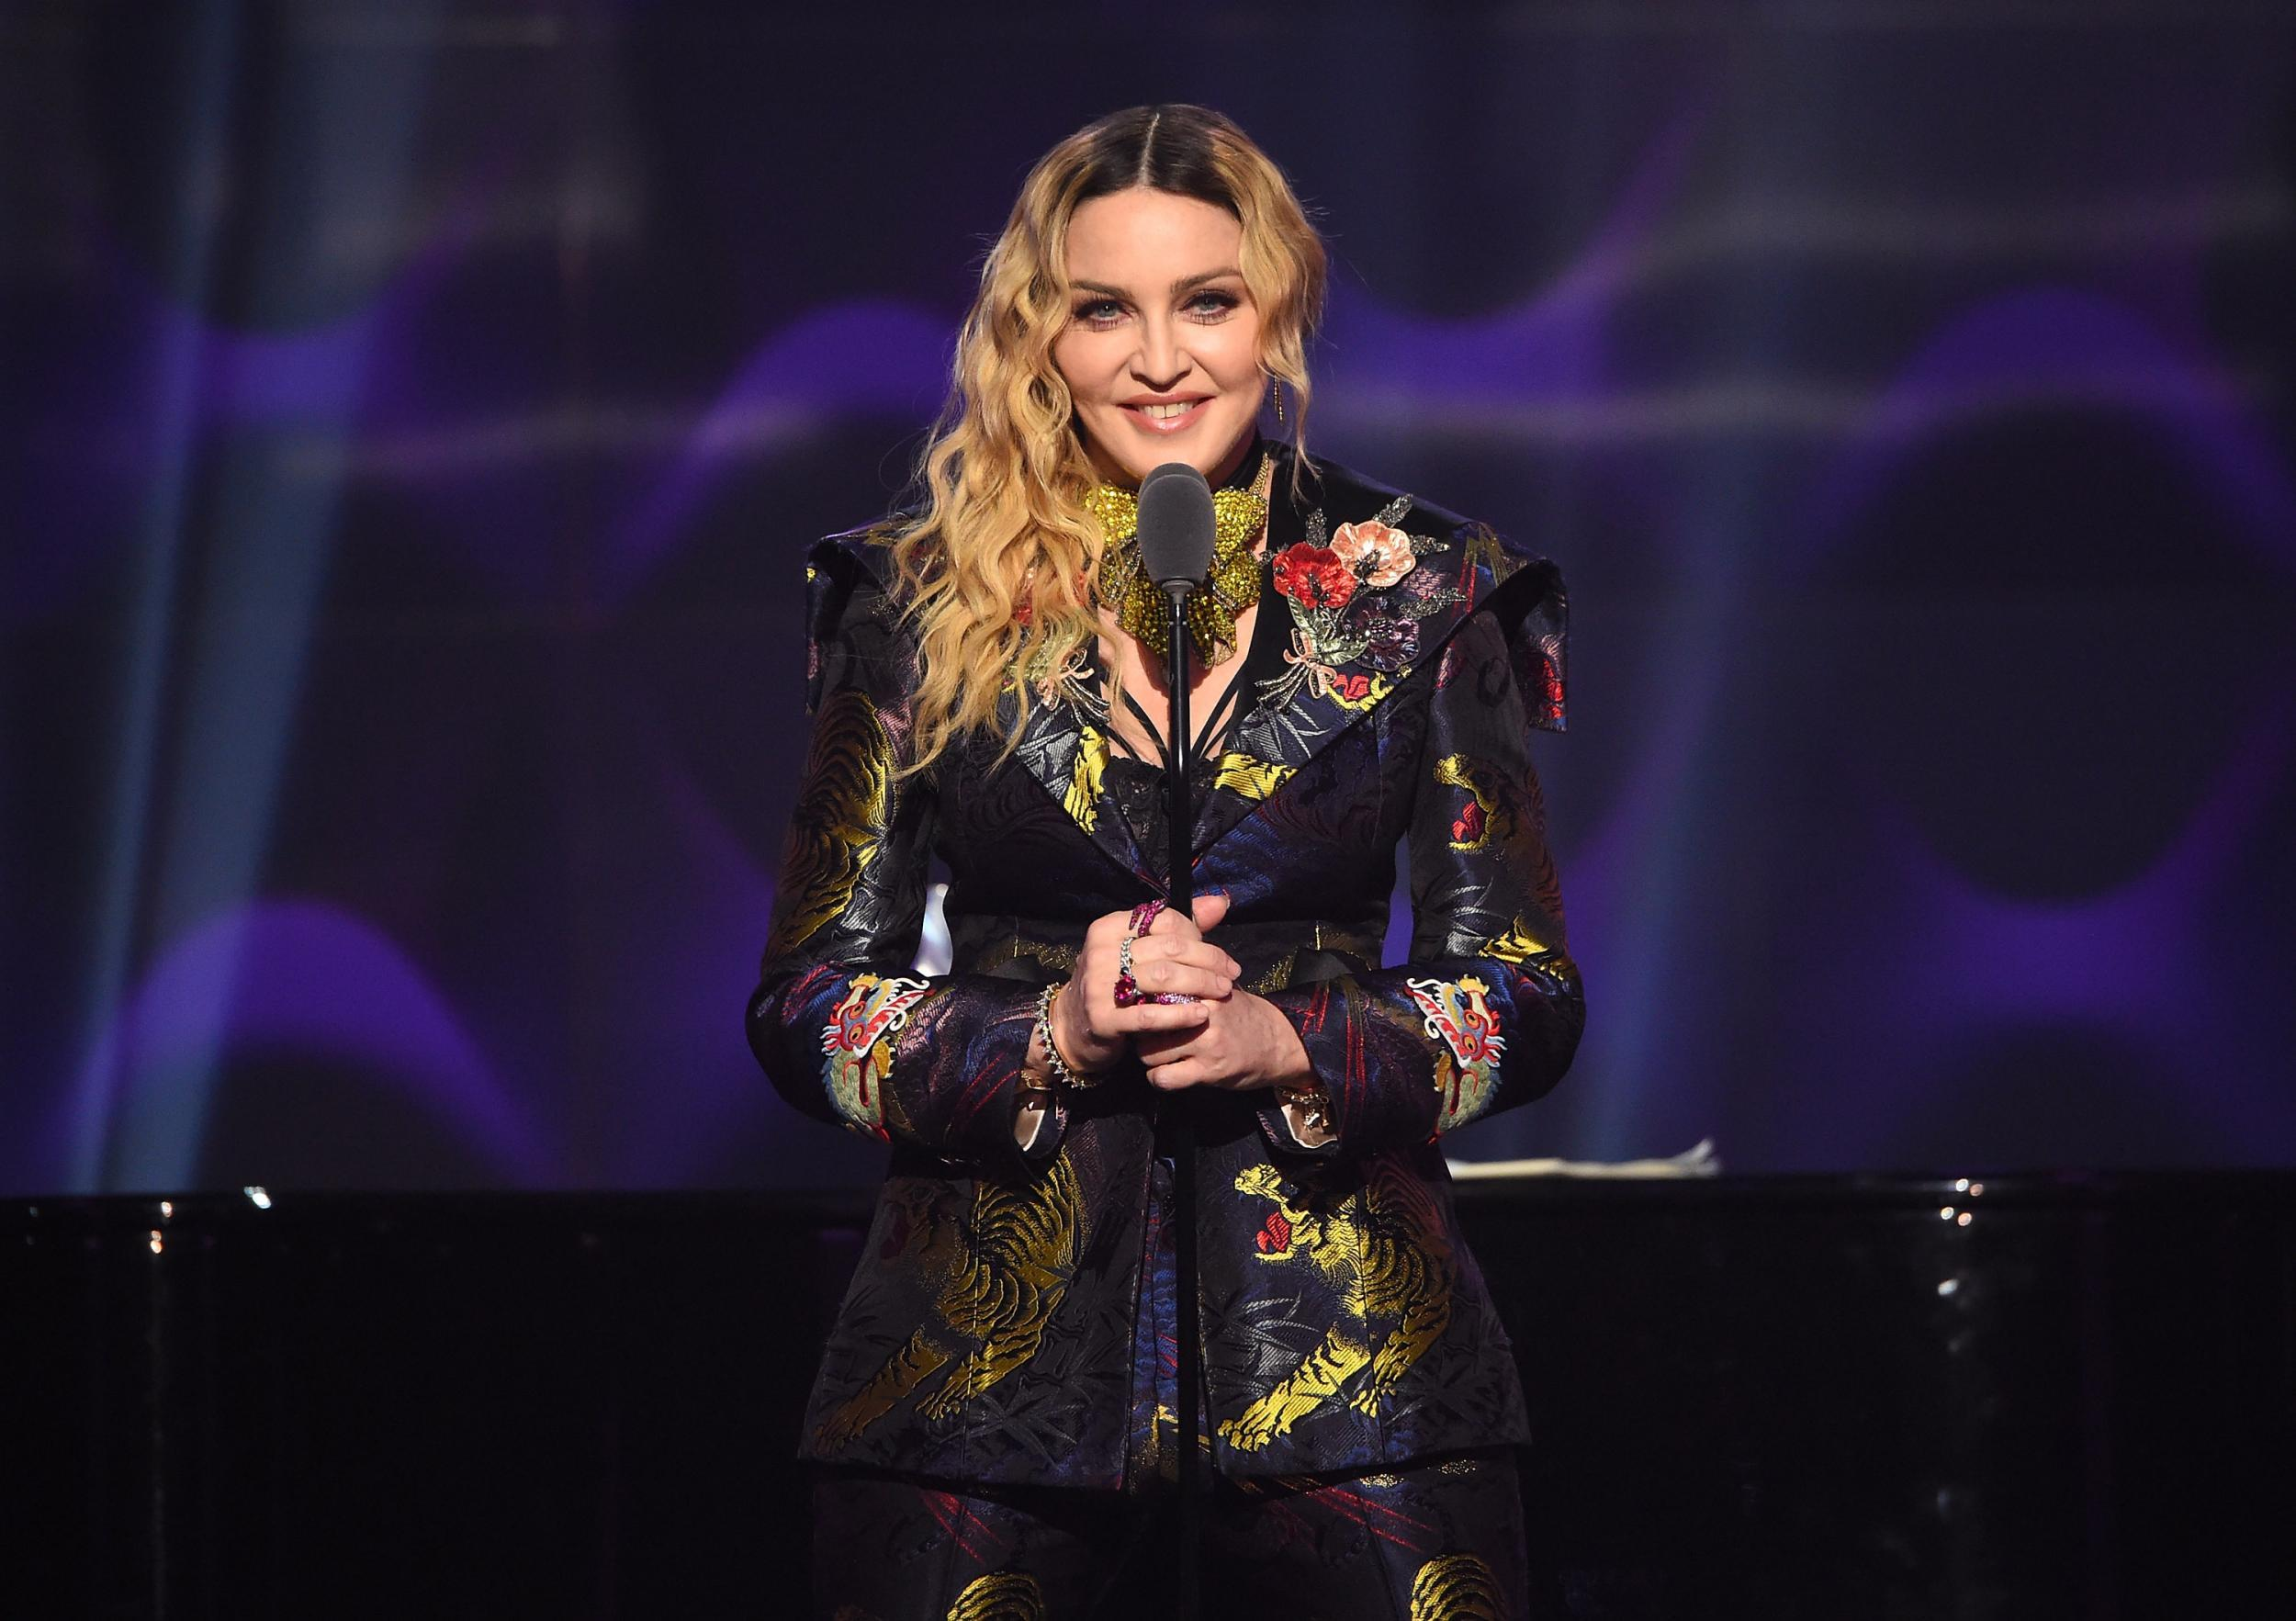 Madonna spoke about the ridicule of her figure 09.12.2009 56